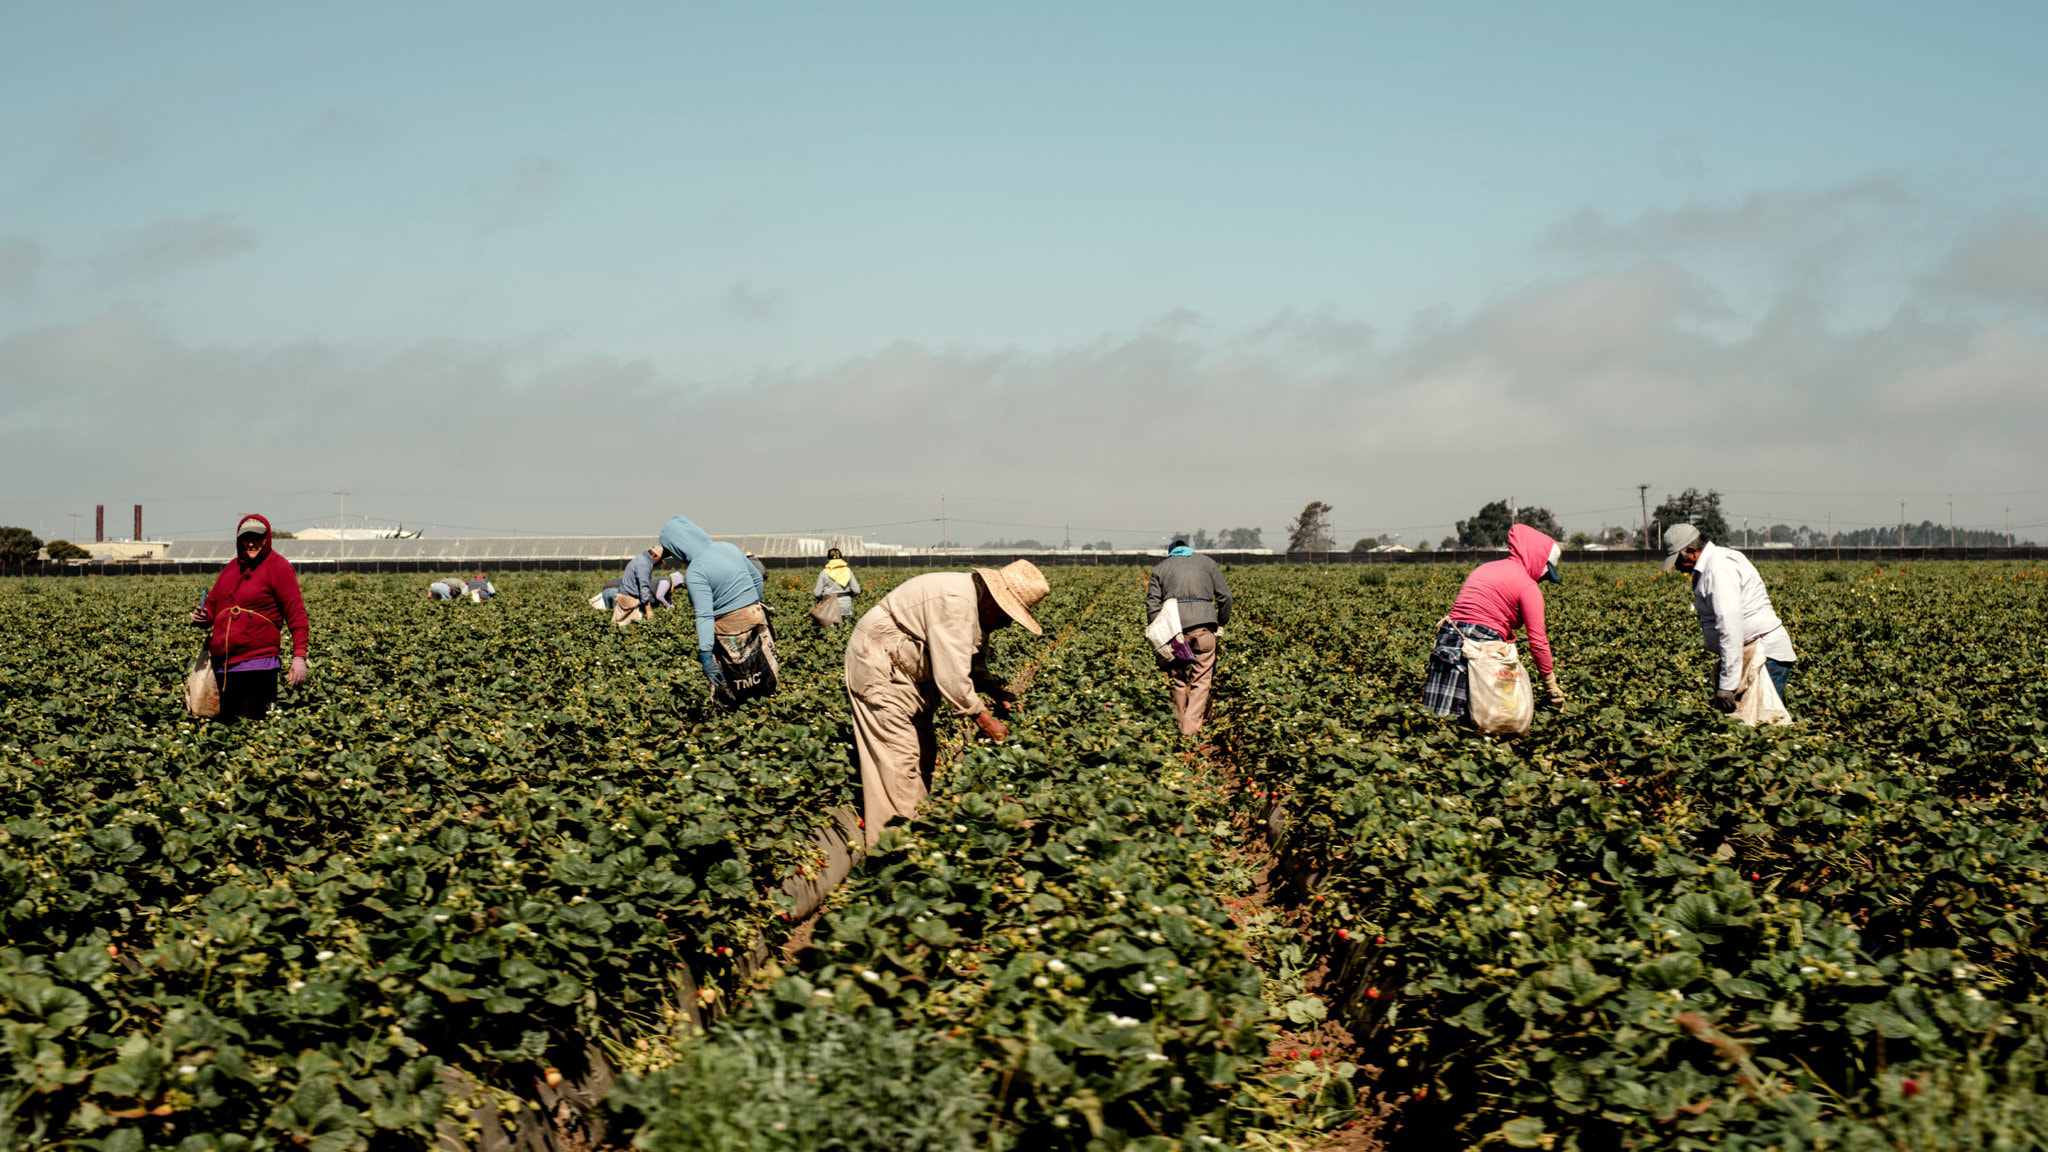 Farmworkers, Mostly Undocumented, Become 'Essential' During Pandemic